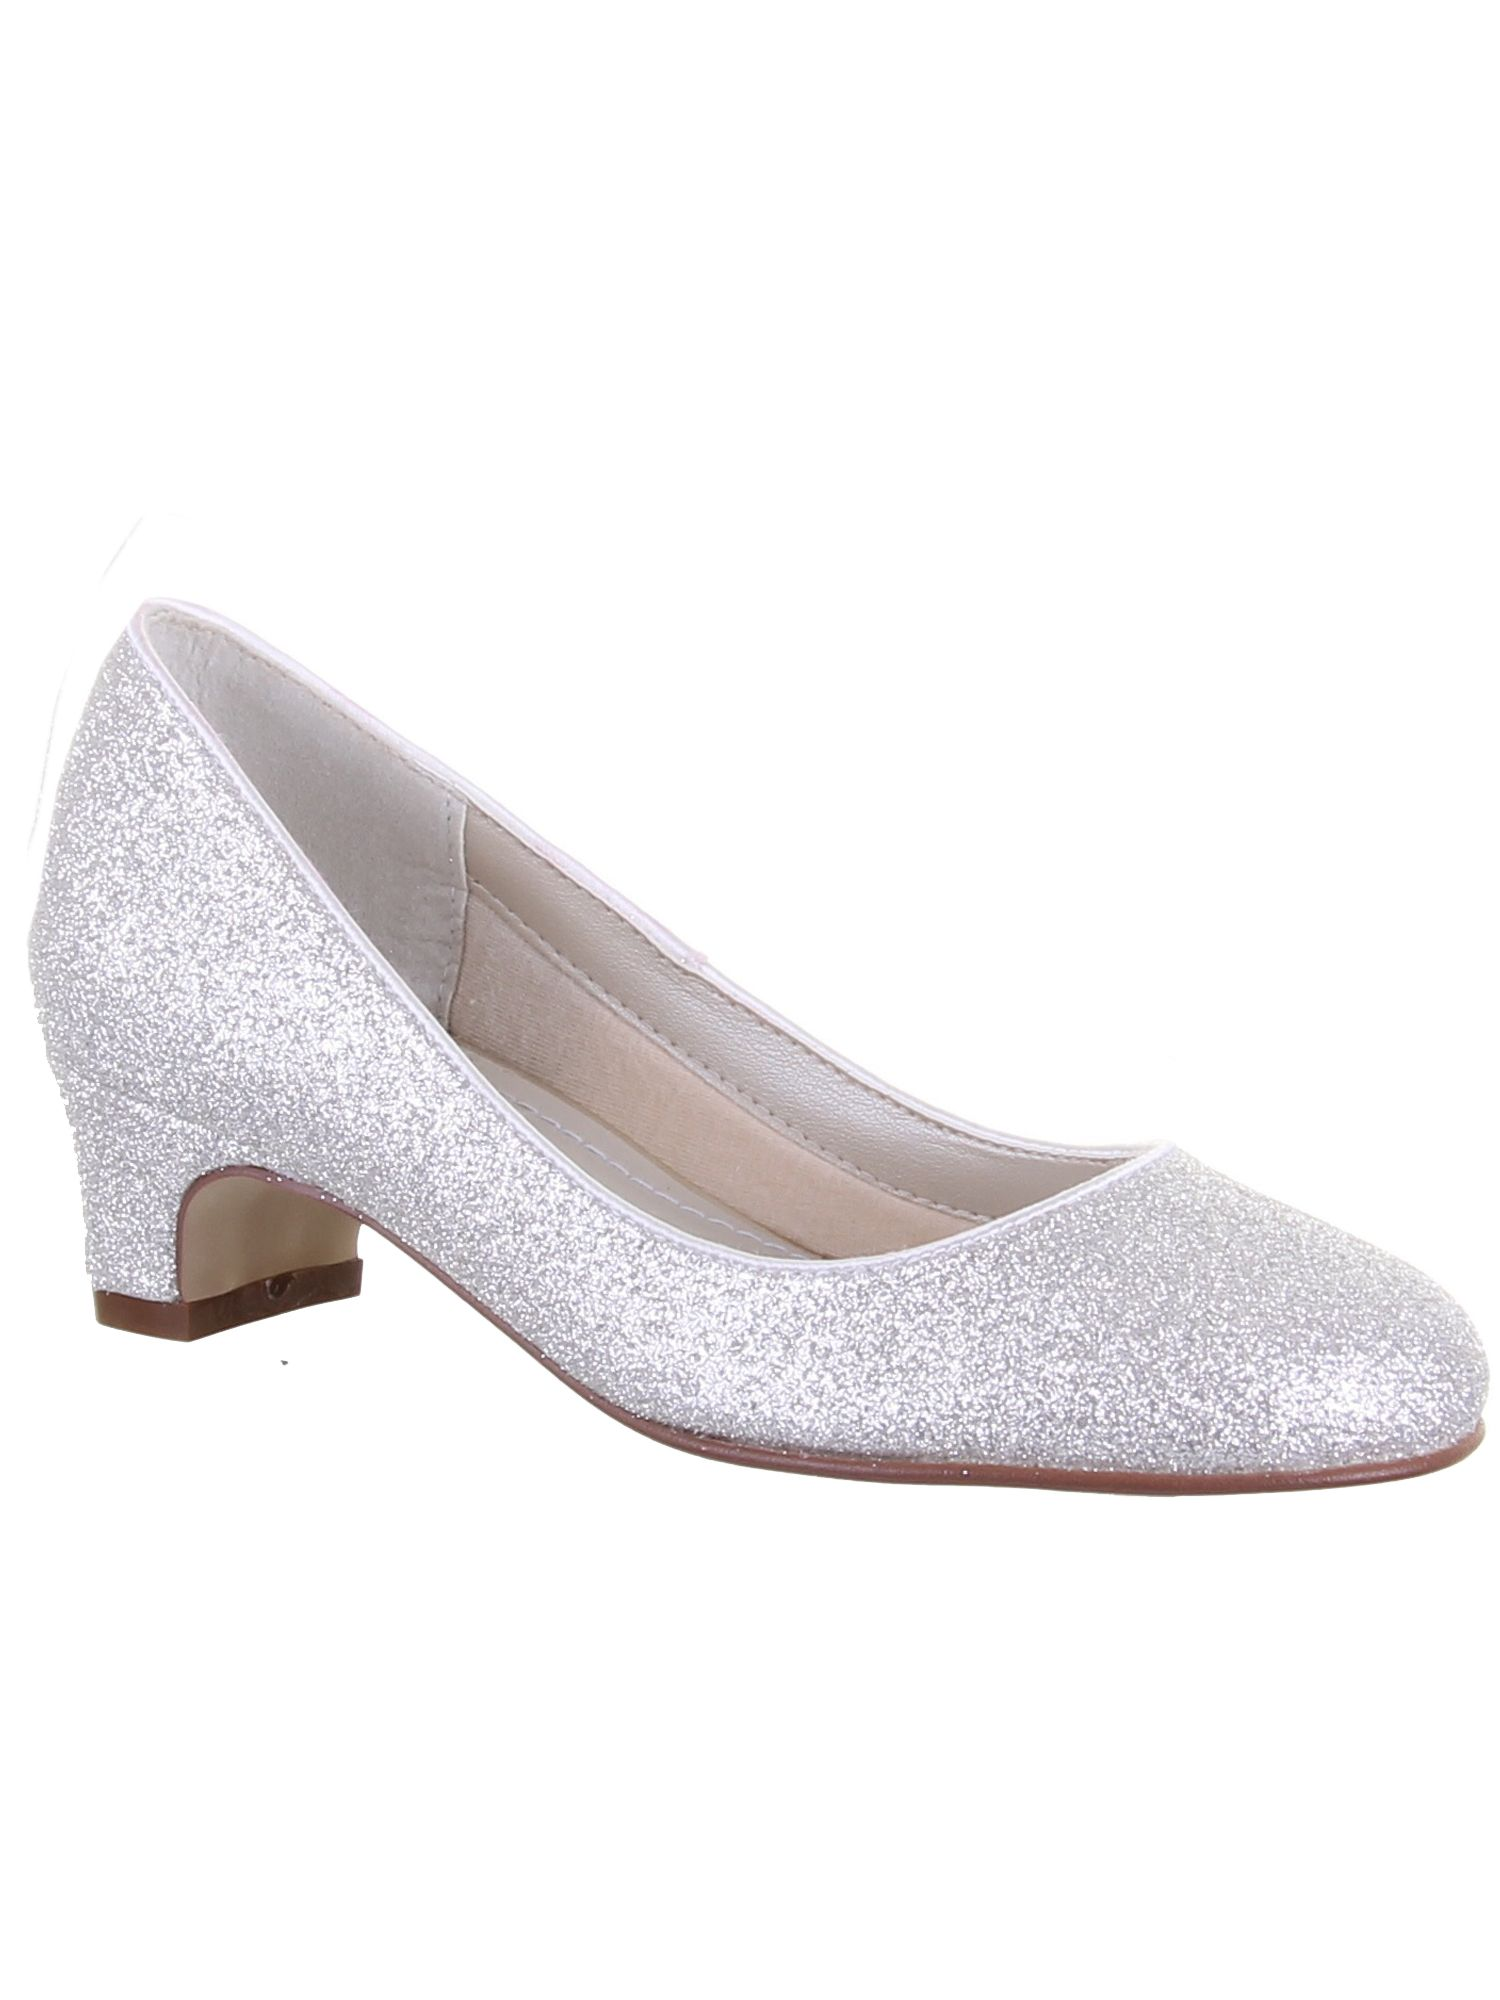 Girls Sasha shimmer pump occasion shoe